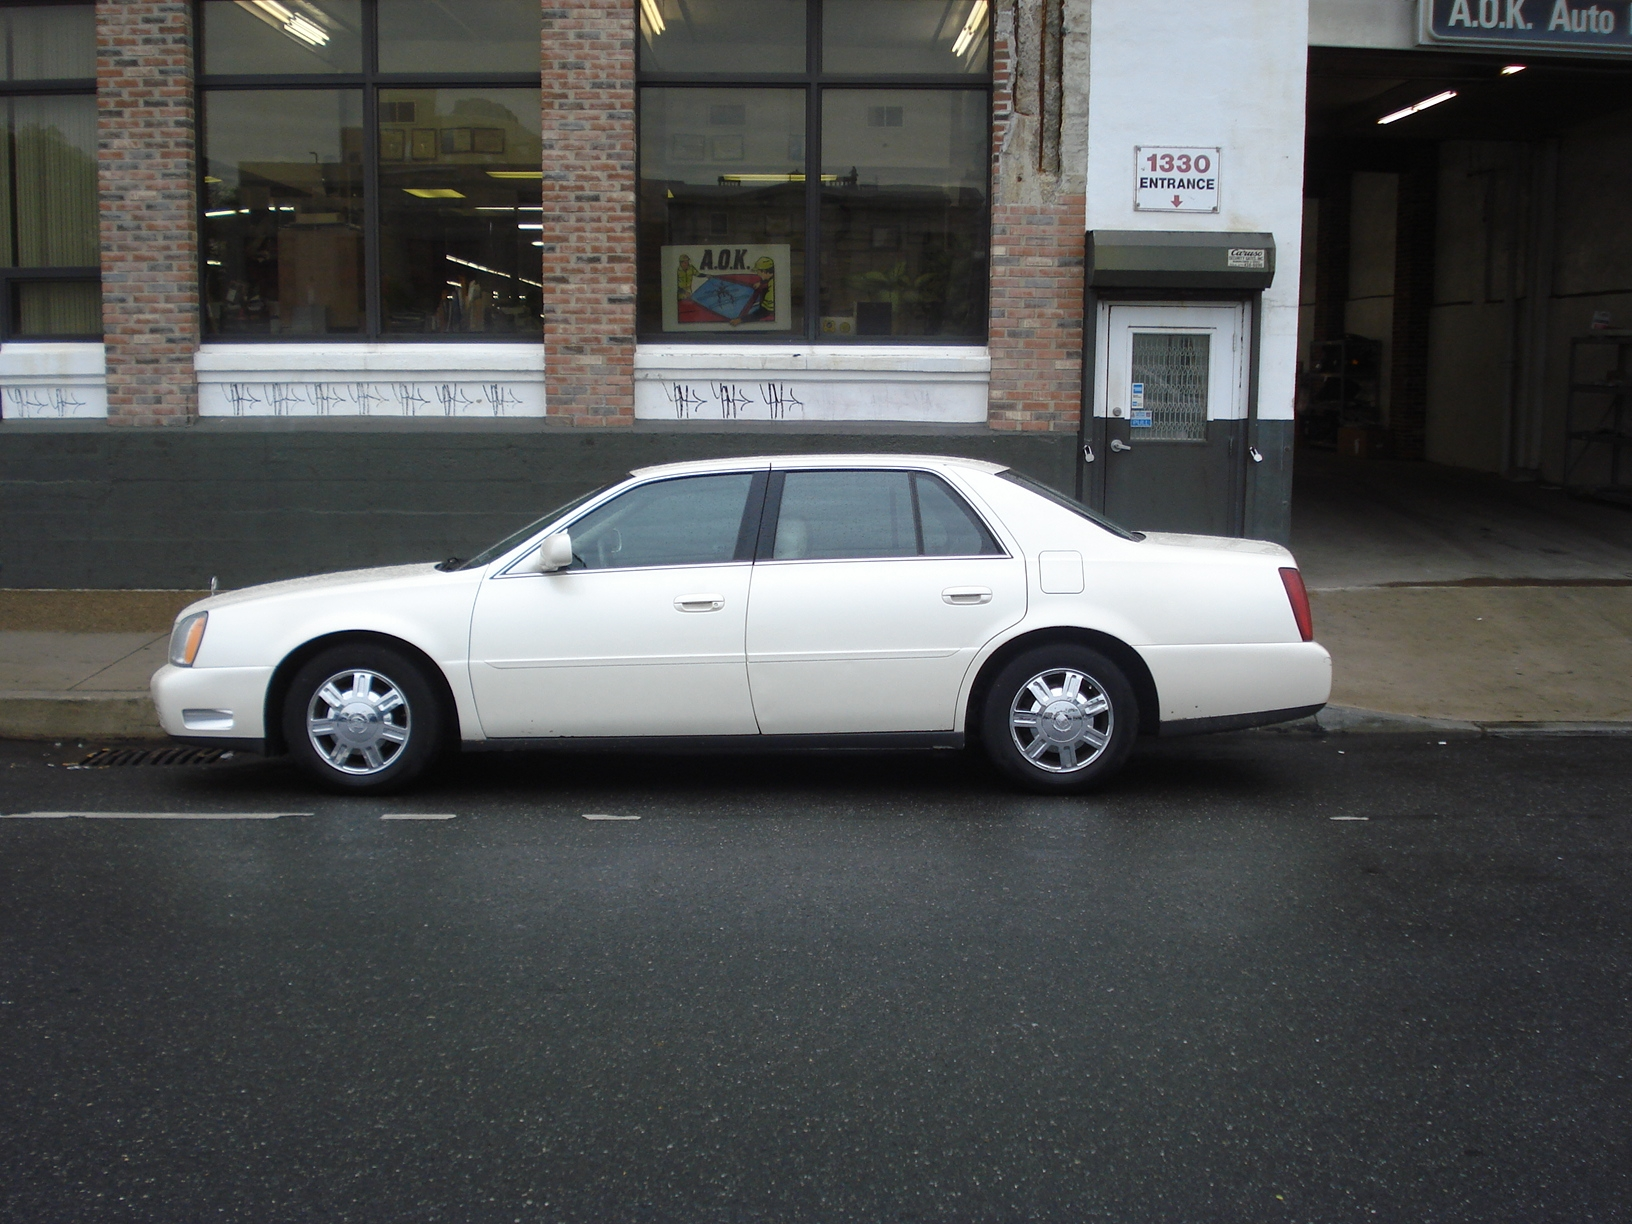 2003 Cadillac Deville Image 12 Cts Wiring Diagram